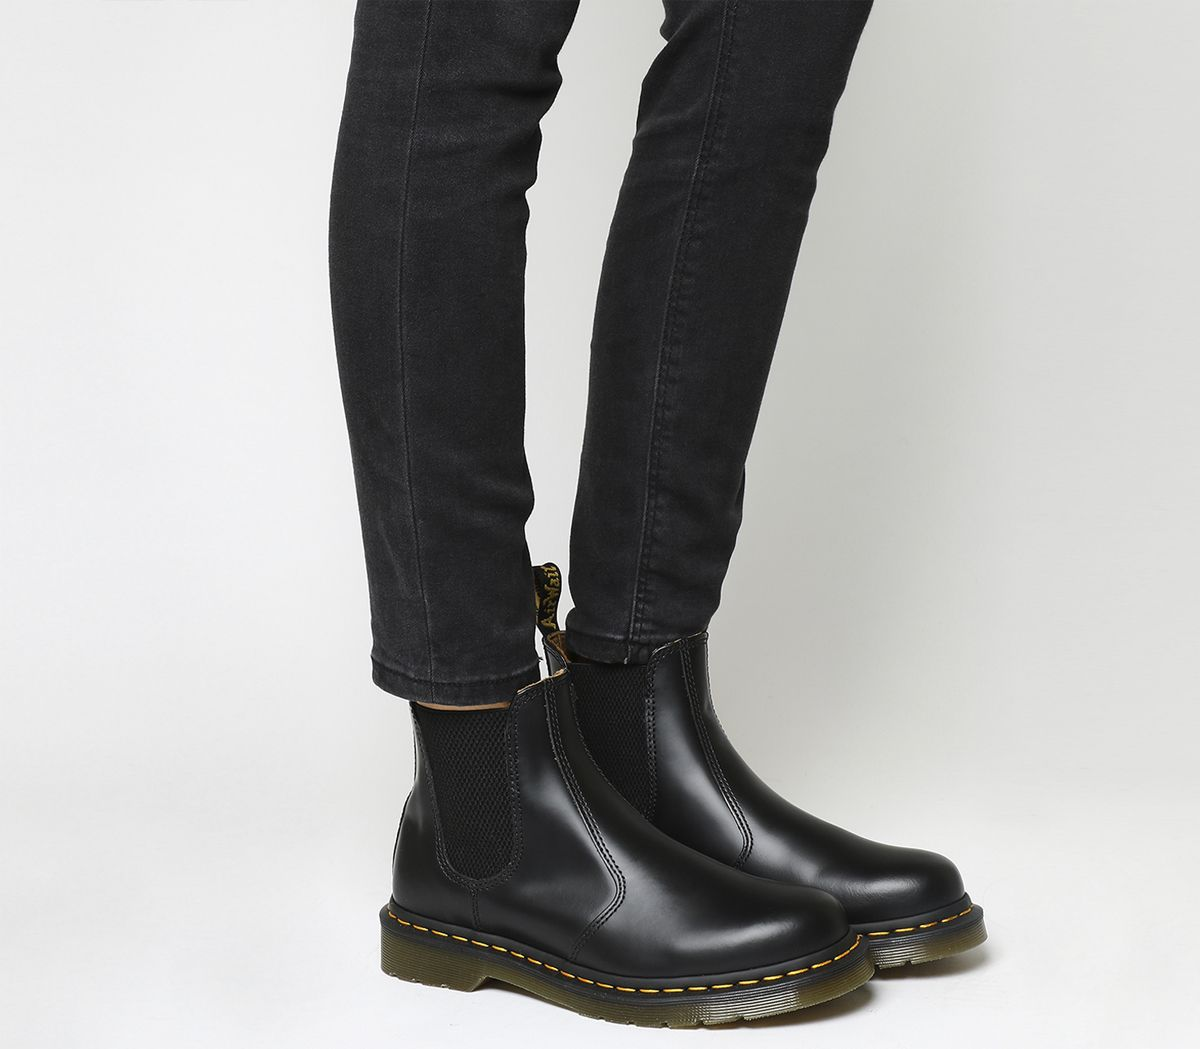 e5421216e700 Dr. Martens 2976 Chelsea Boot Black Smooth Leather - Ankle Boots